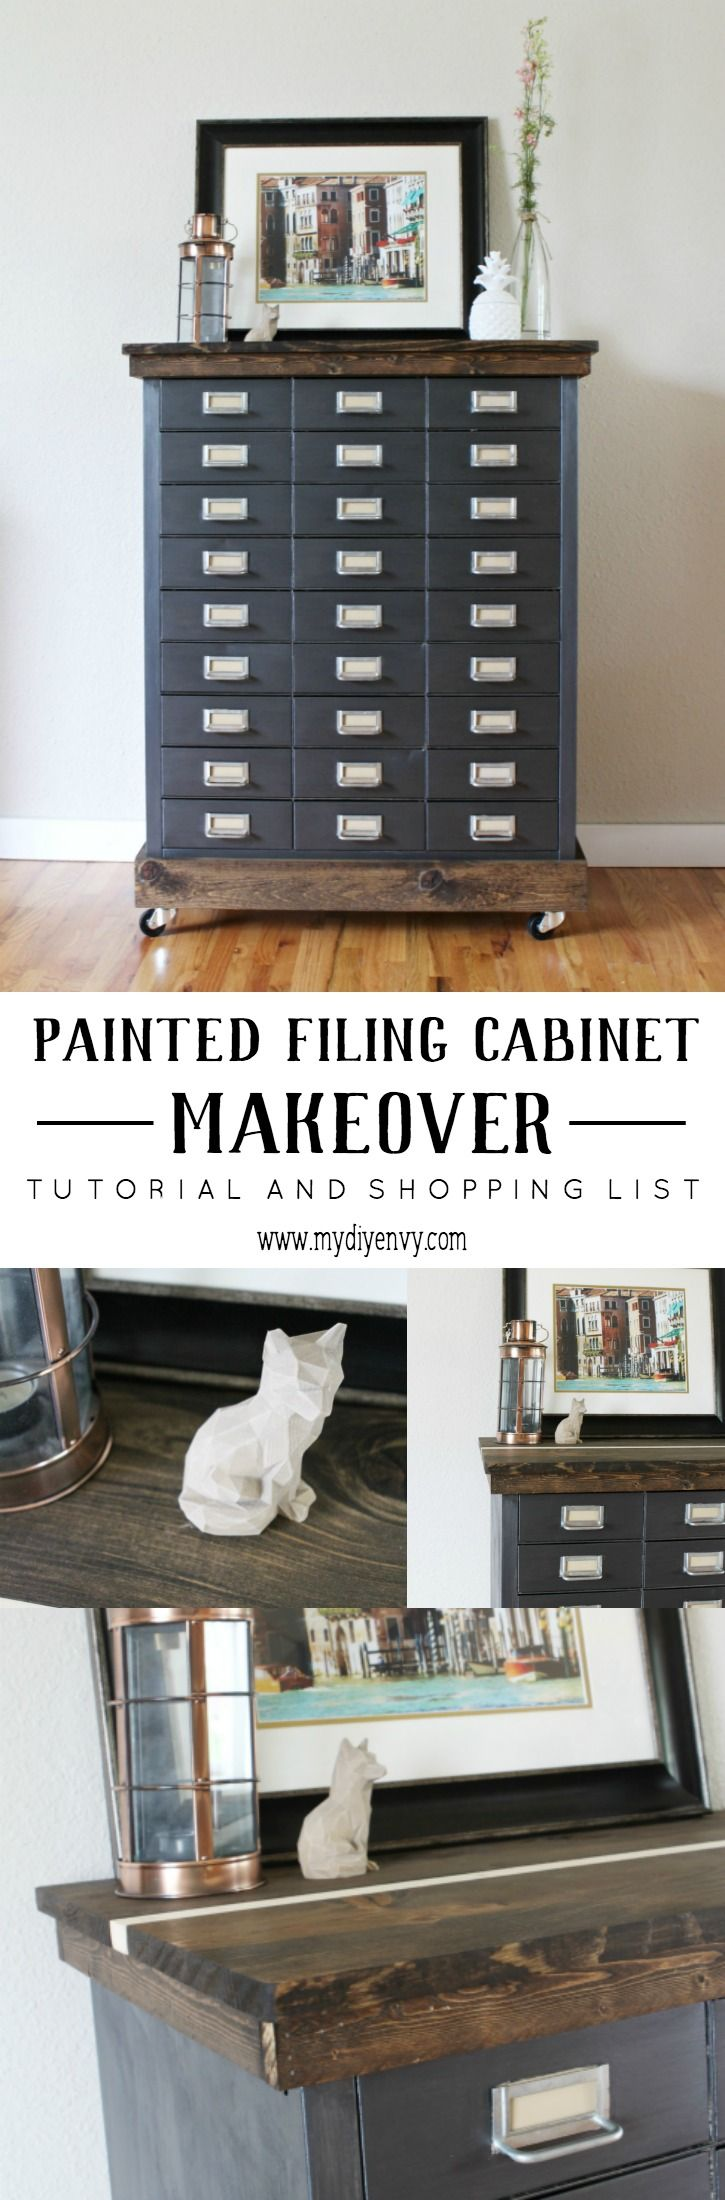 This painted filing cabinet makeover is amazing! Learn how to use Country Chic metallic cream to restore this metal filing cabinet and add a new wood top! | www.mydiyenvy.com